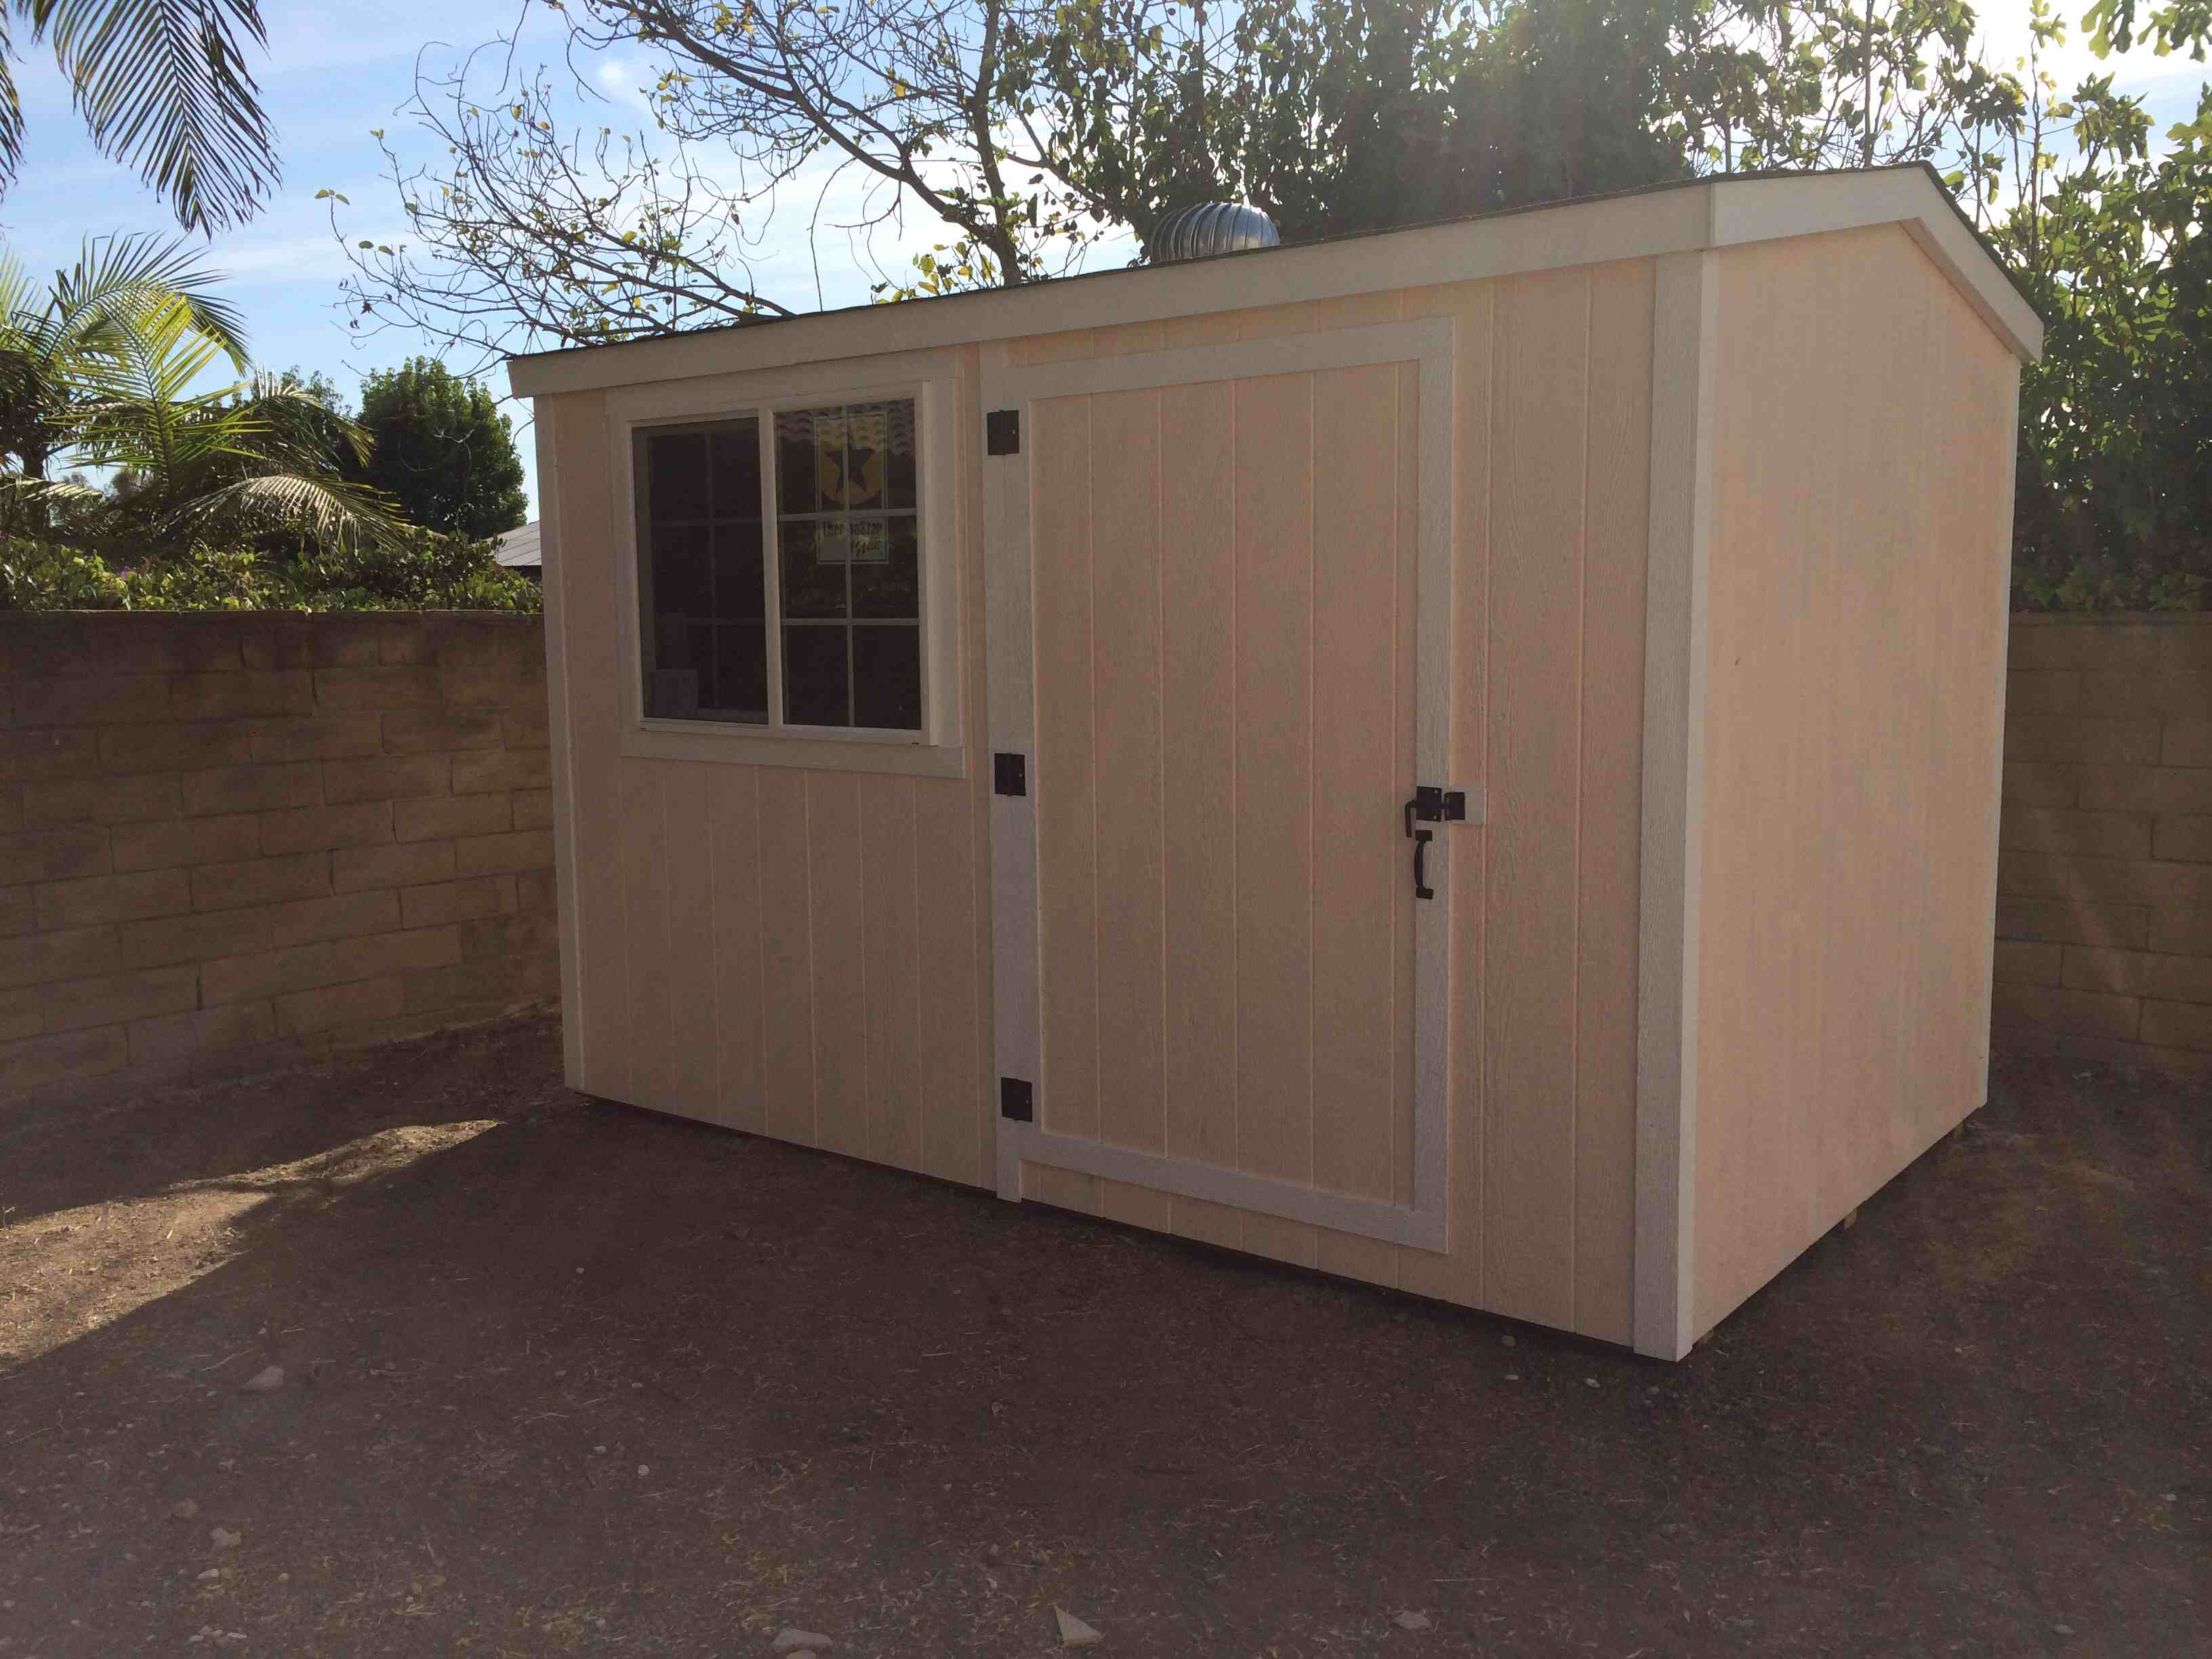 Socal Dream Sheds and Awnings | Huntington Beach, CA 92647 ...